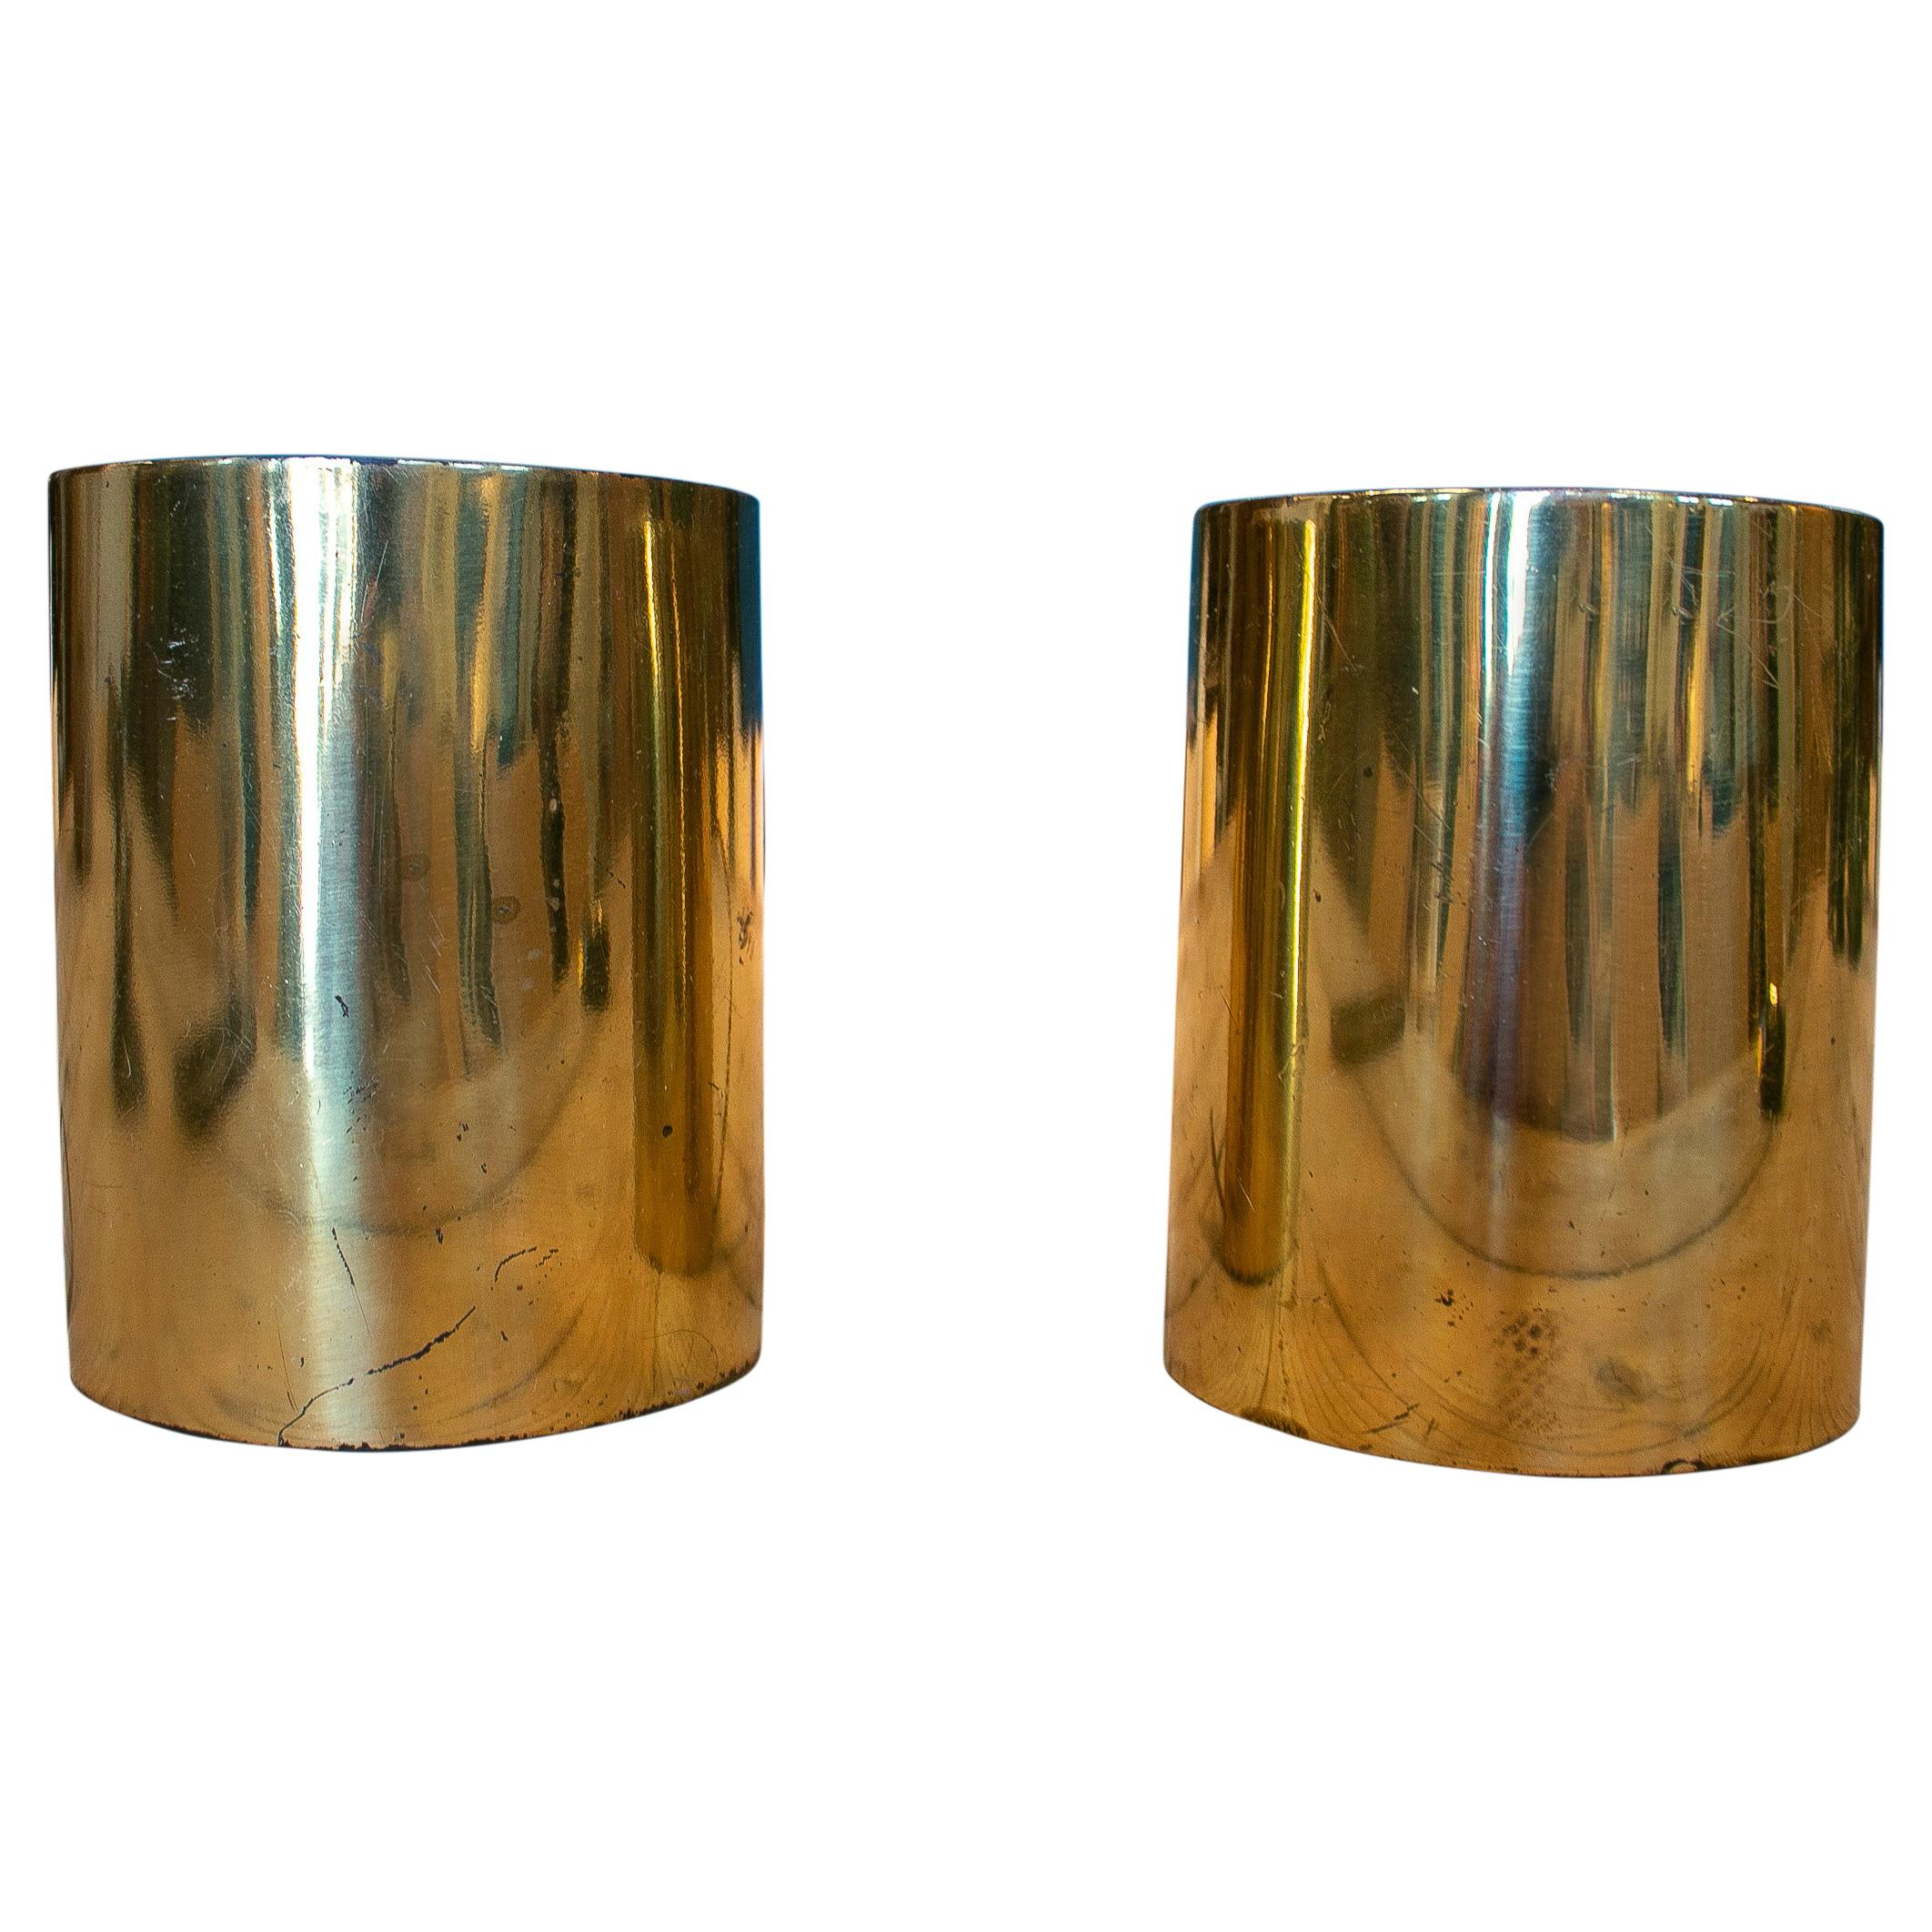 Pair of 1970s French Designer Gilt Bronze Sconce Wall Lamps w/ Shades